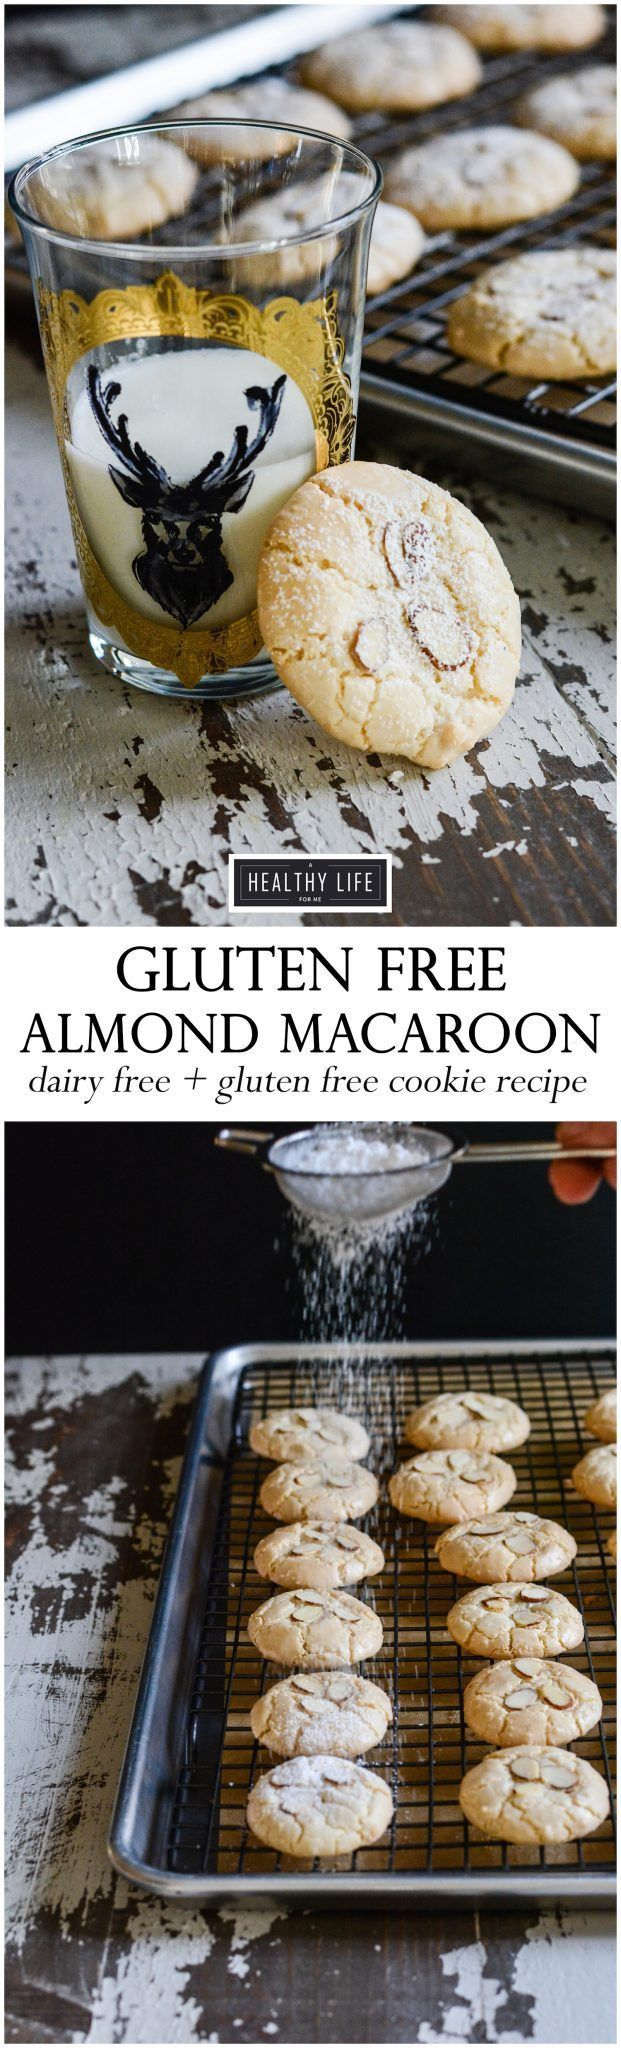 Perfect gluten free almond macaroon recipe.  All ingredients were purchased at Walmart online grocery service.  Life is made easy with online grocery shopping - A Healthy Life For Me